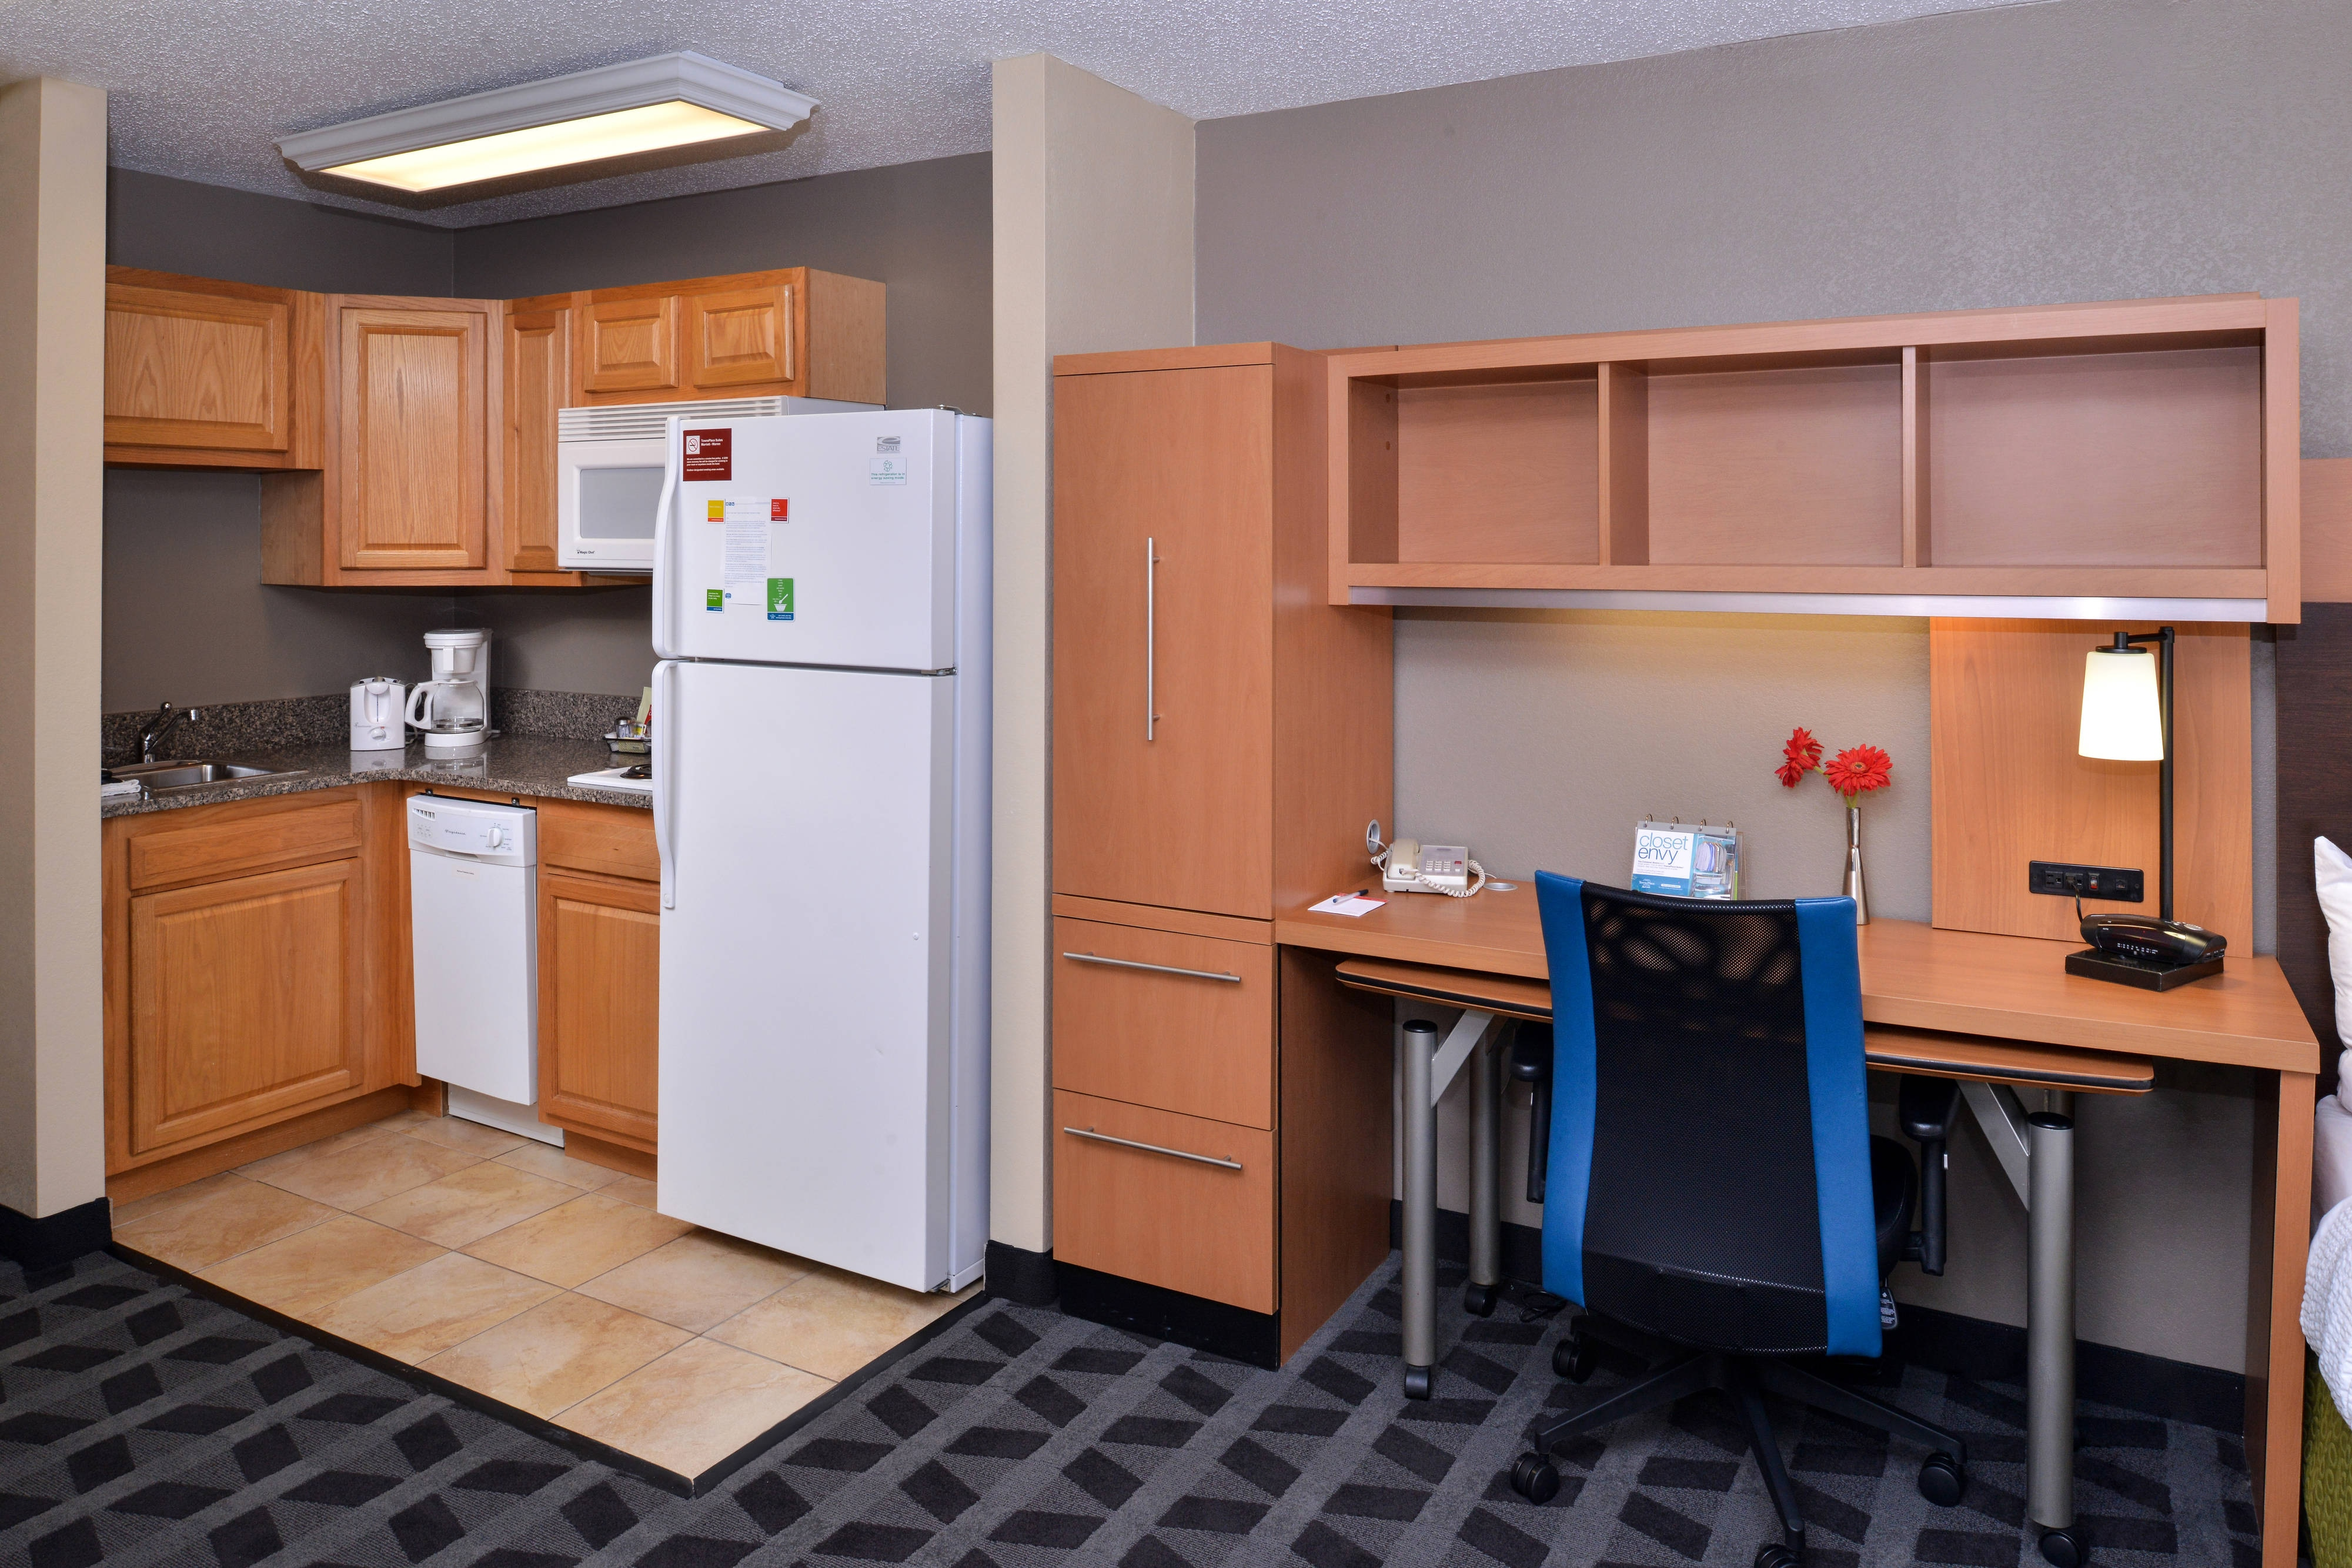 Kitchenette and Desk